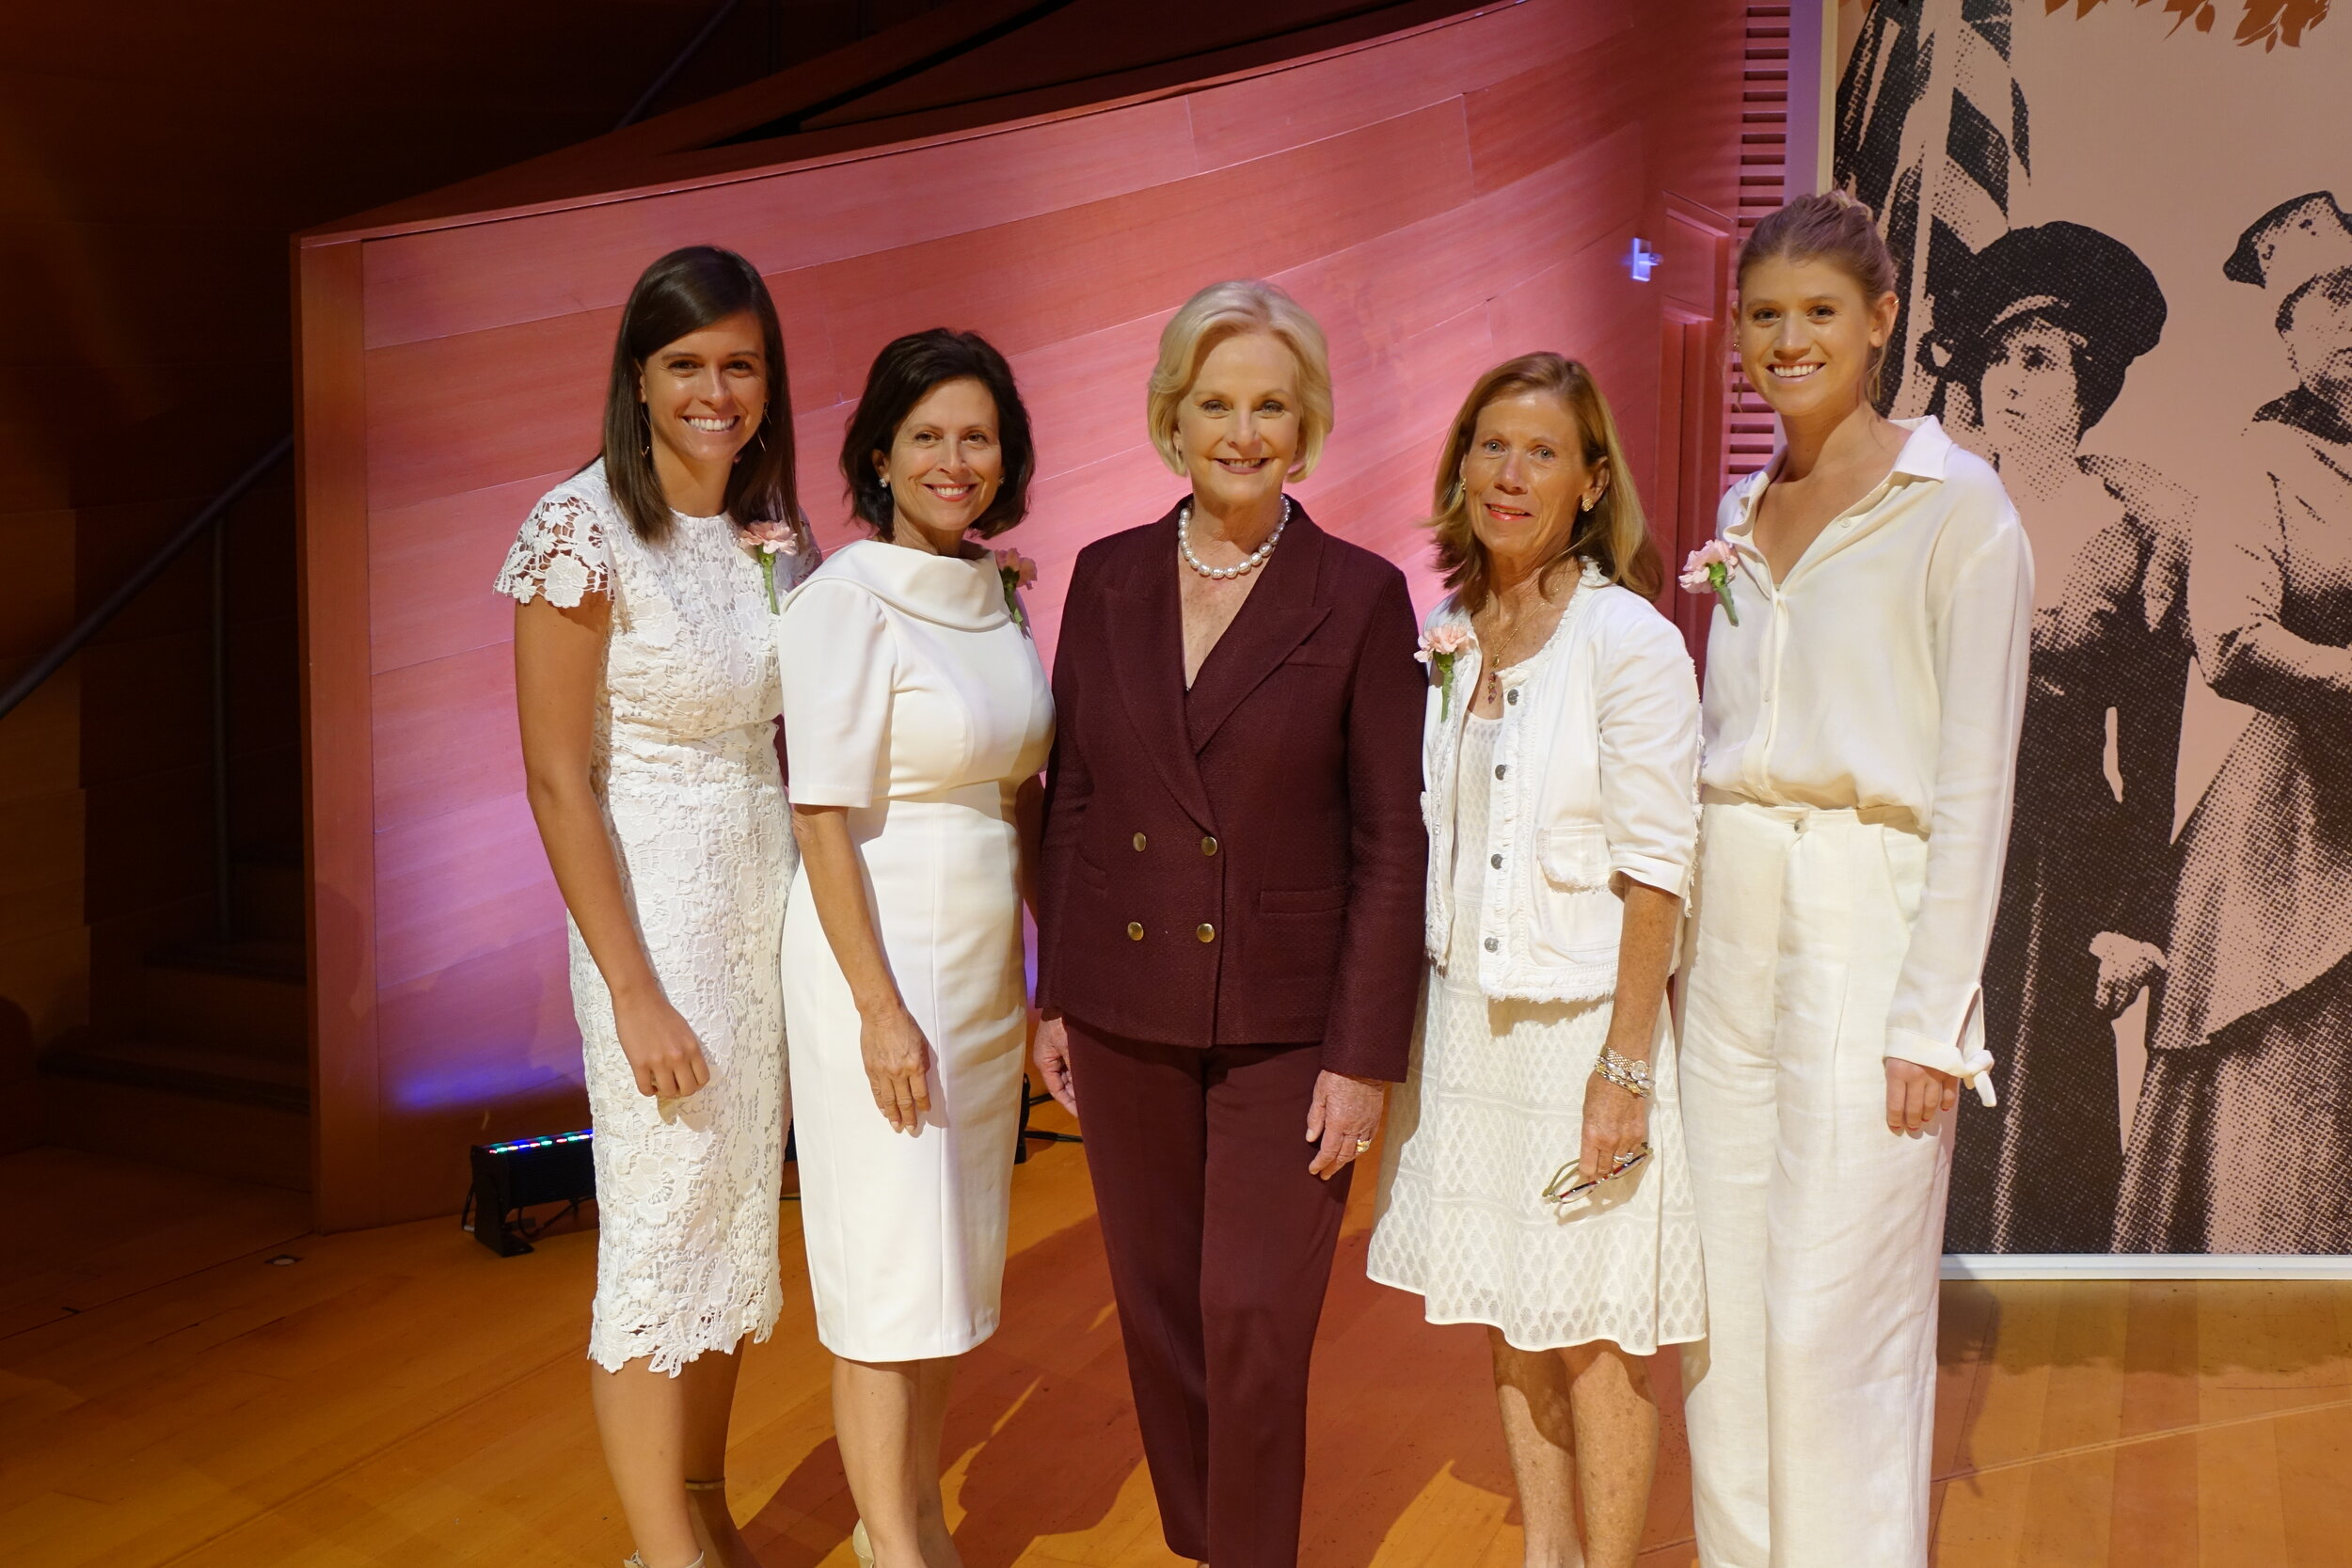 Our event chairs Millie Brown, Stephanie Schneider, and Caroline and Cathi Brain with Cindy McCain.